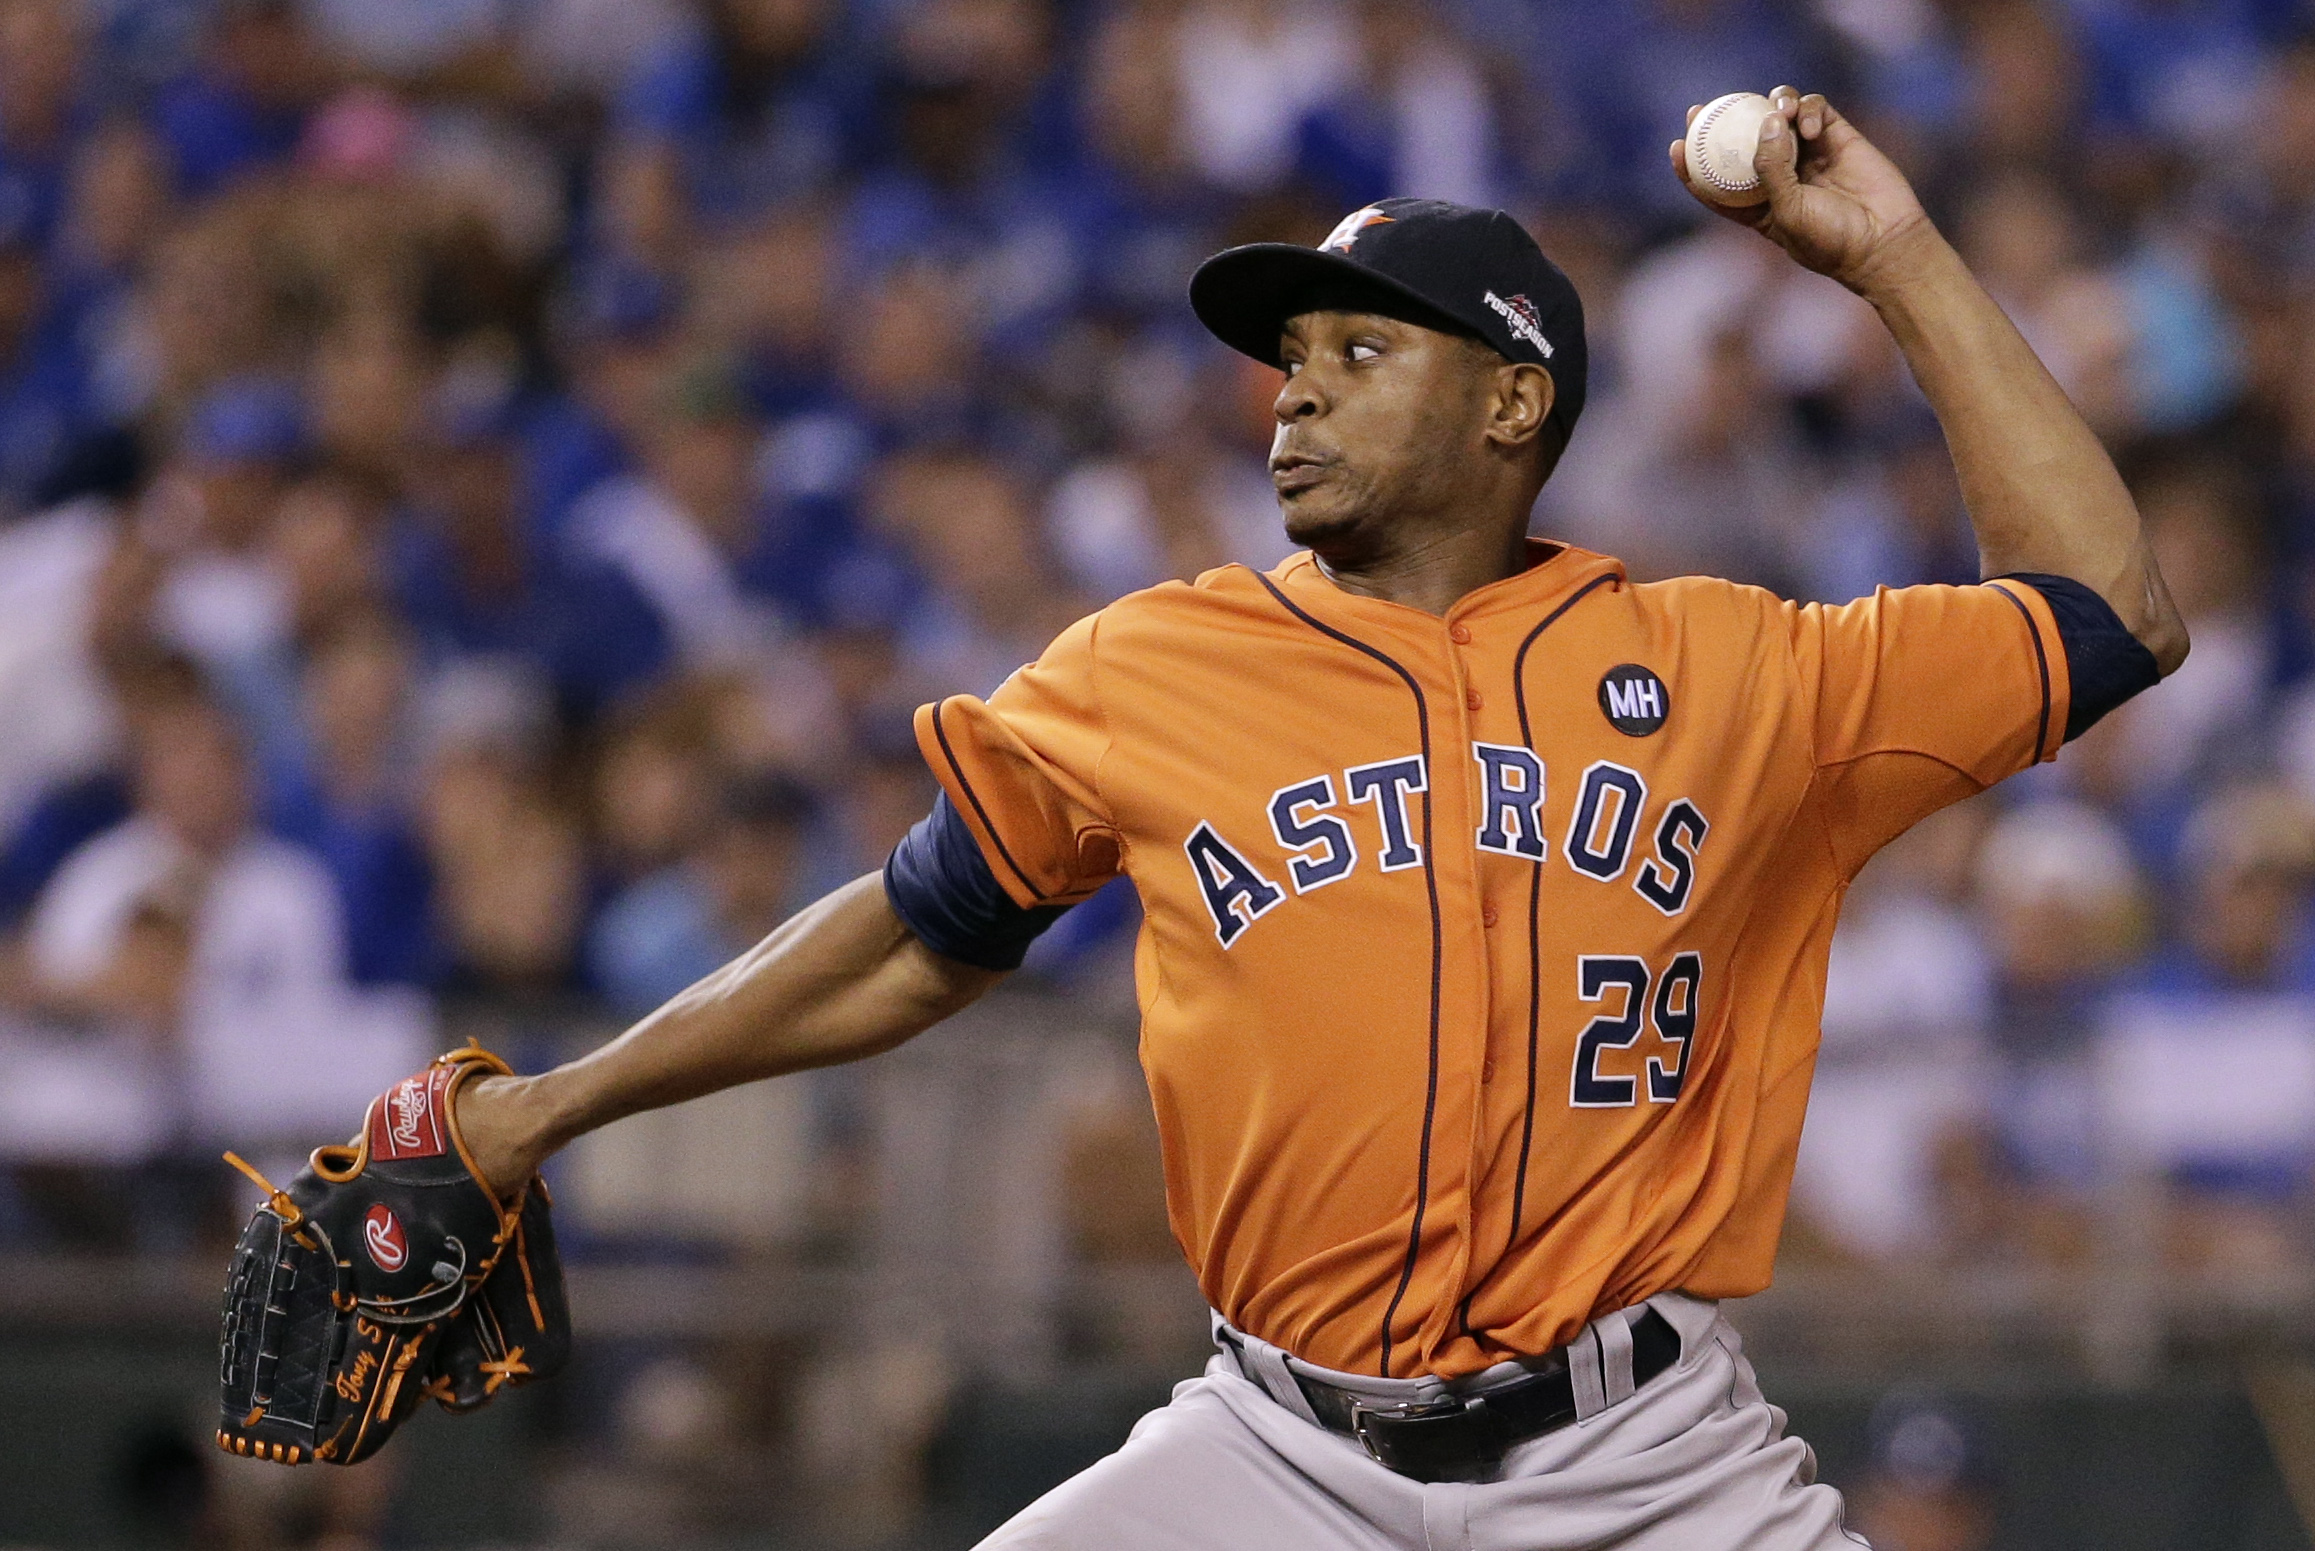 Houston Astros relief pitcher Tony Sipp throws during the seventh inning in Game 1 of baseball's American League Division Series against the Kansas City Royals, Thursday, Oct. 8, 2015, in Kansas City, Mo. (AP Photo/Charlie Riedel)